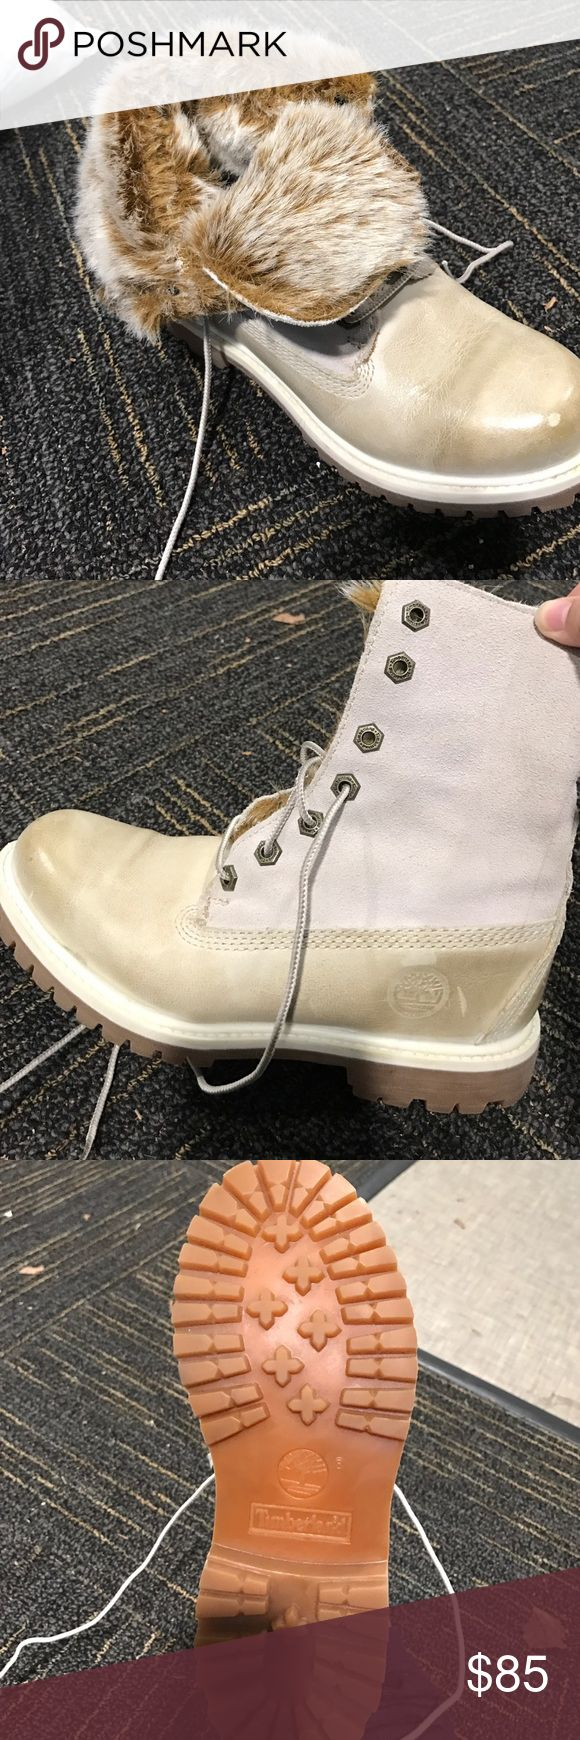 Women's timberland boots Size 6.5 women timberland boots with fur! Super cute can wear many different ways. Only worn a few times, were a gift, will work with price! Timberland Shoes Winter & Rain Boots